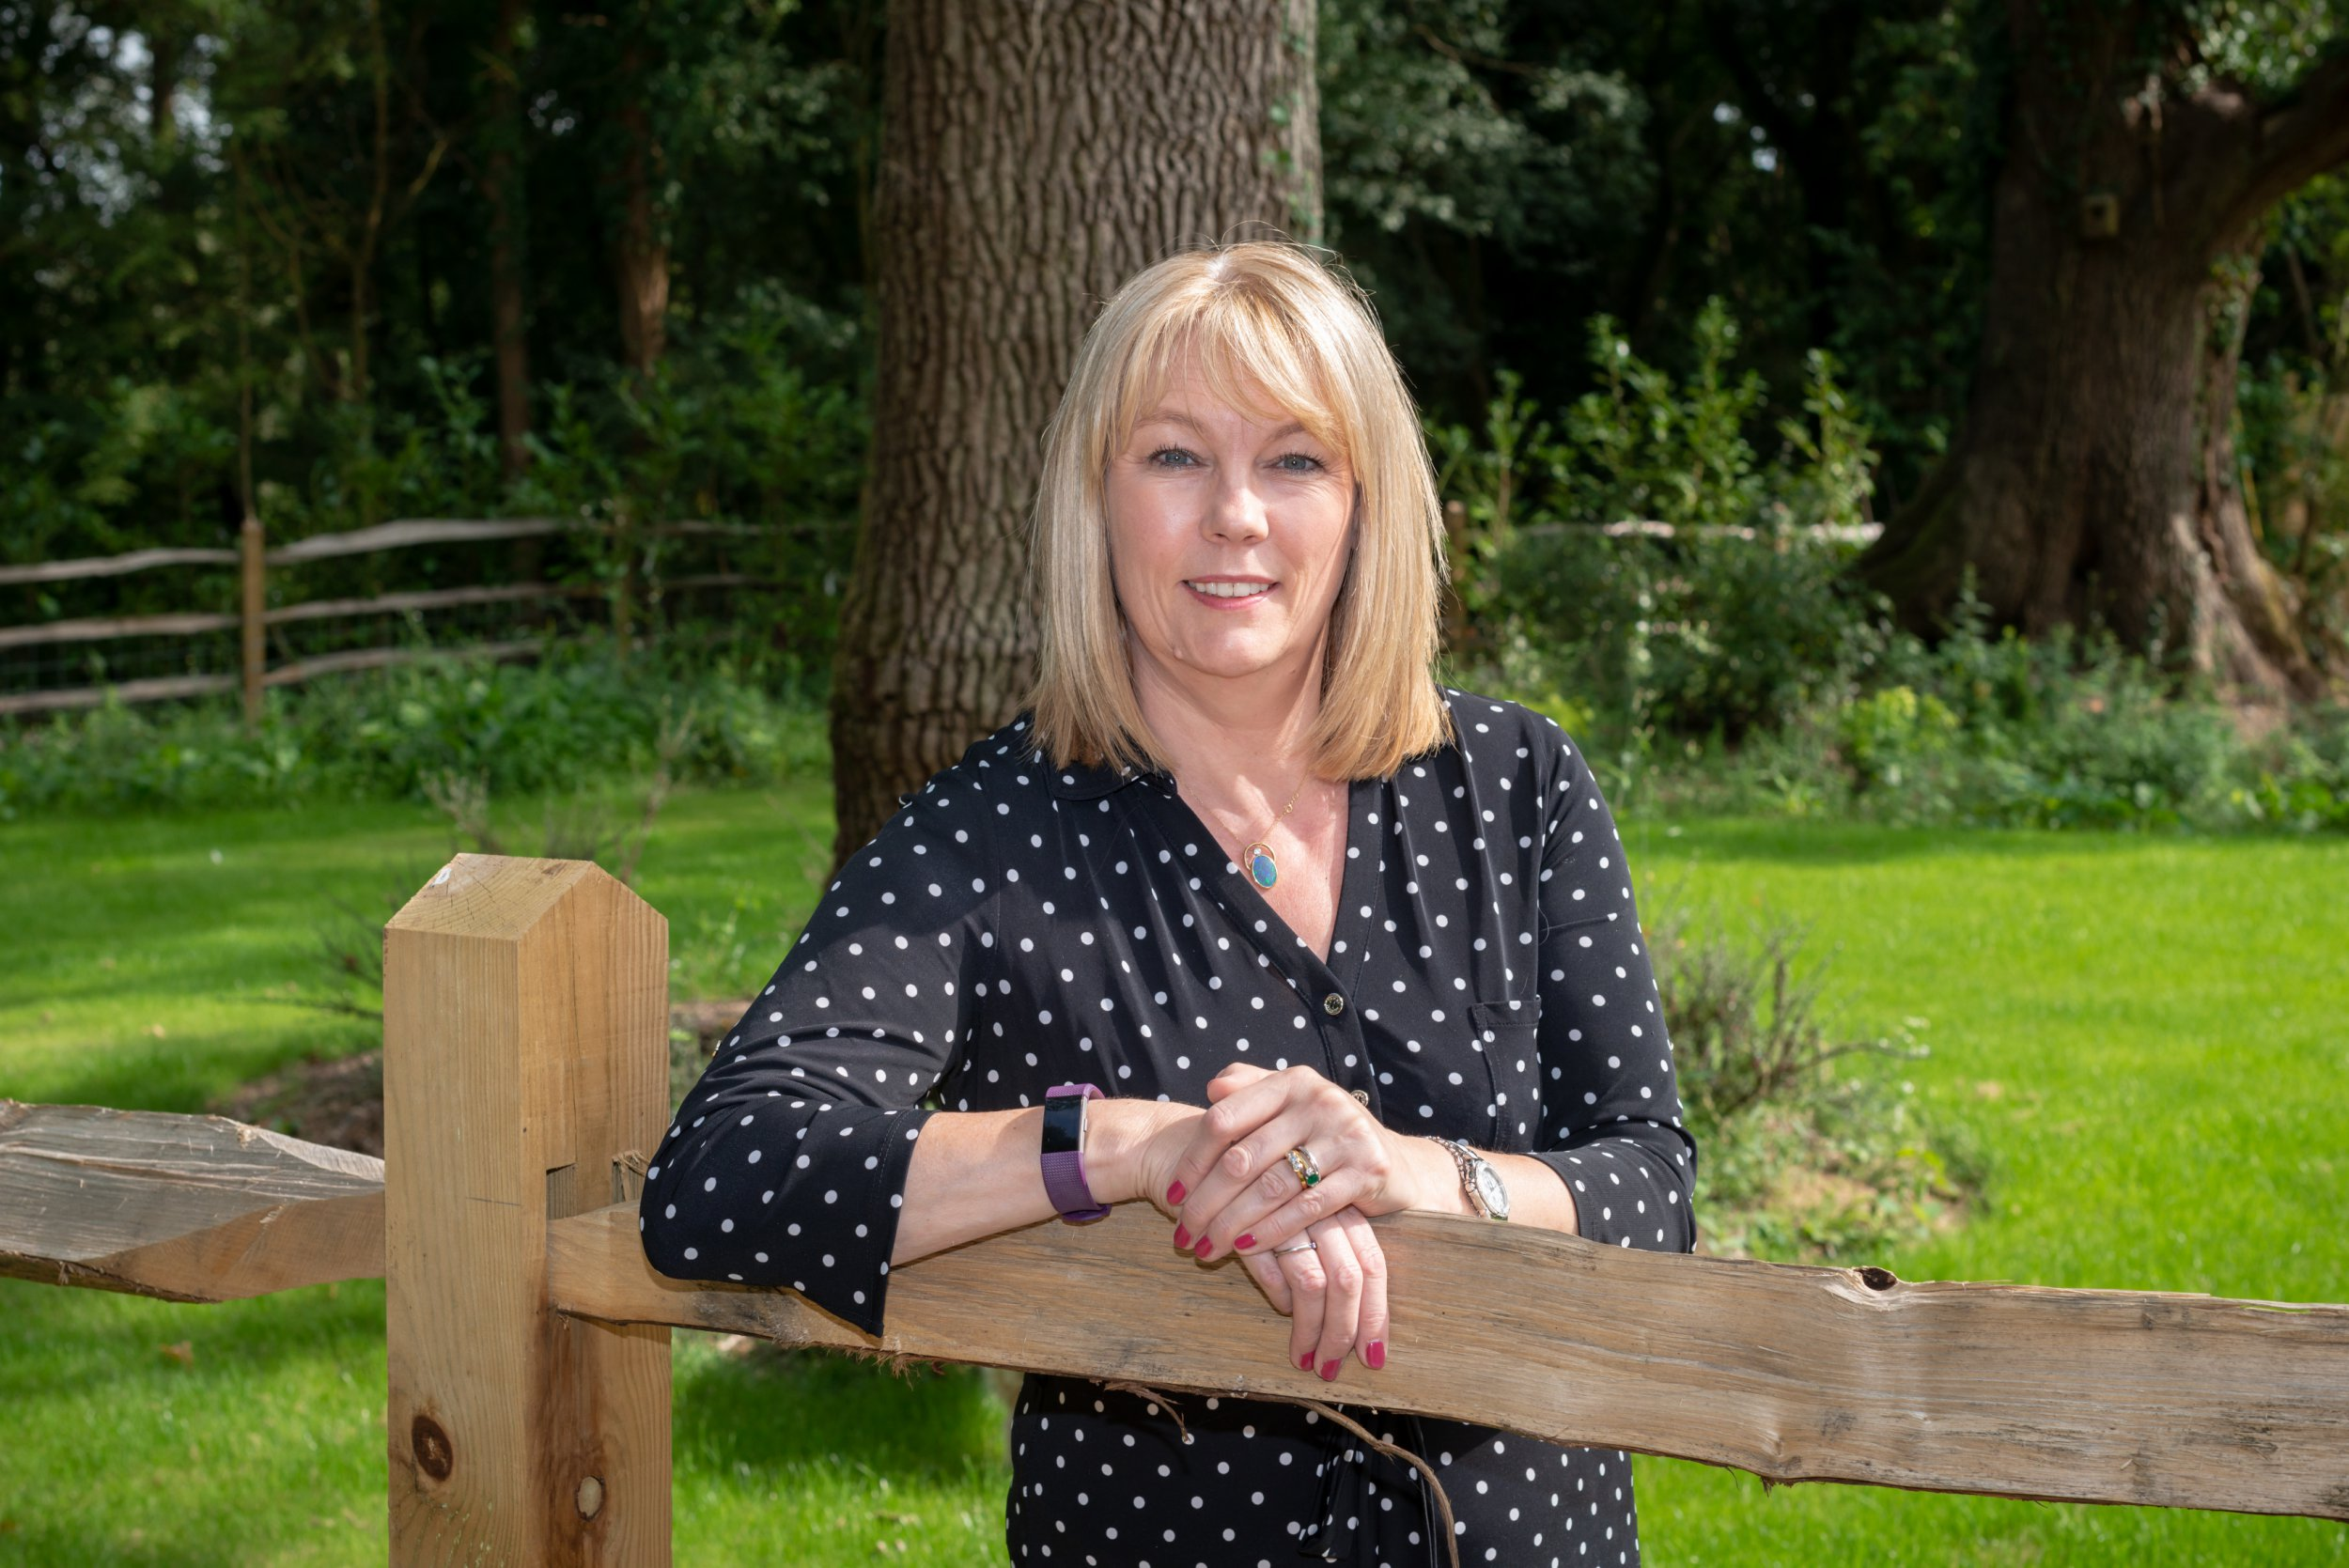 Wisborough Green, West Sussex, UK. 24th August 2018. Ali Stunt, CEO of the Pancreatic Cancer Action charity, at her home in Wisborough Green, West Sussex. In Photo: Ali Stunt in her garden.